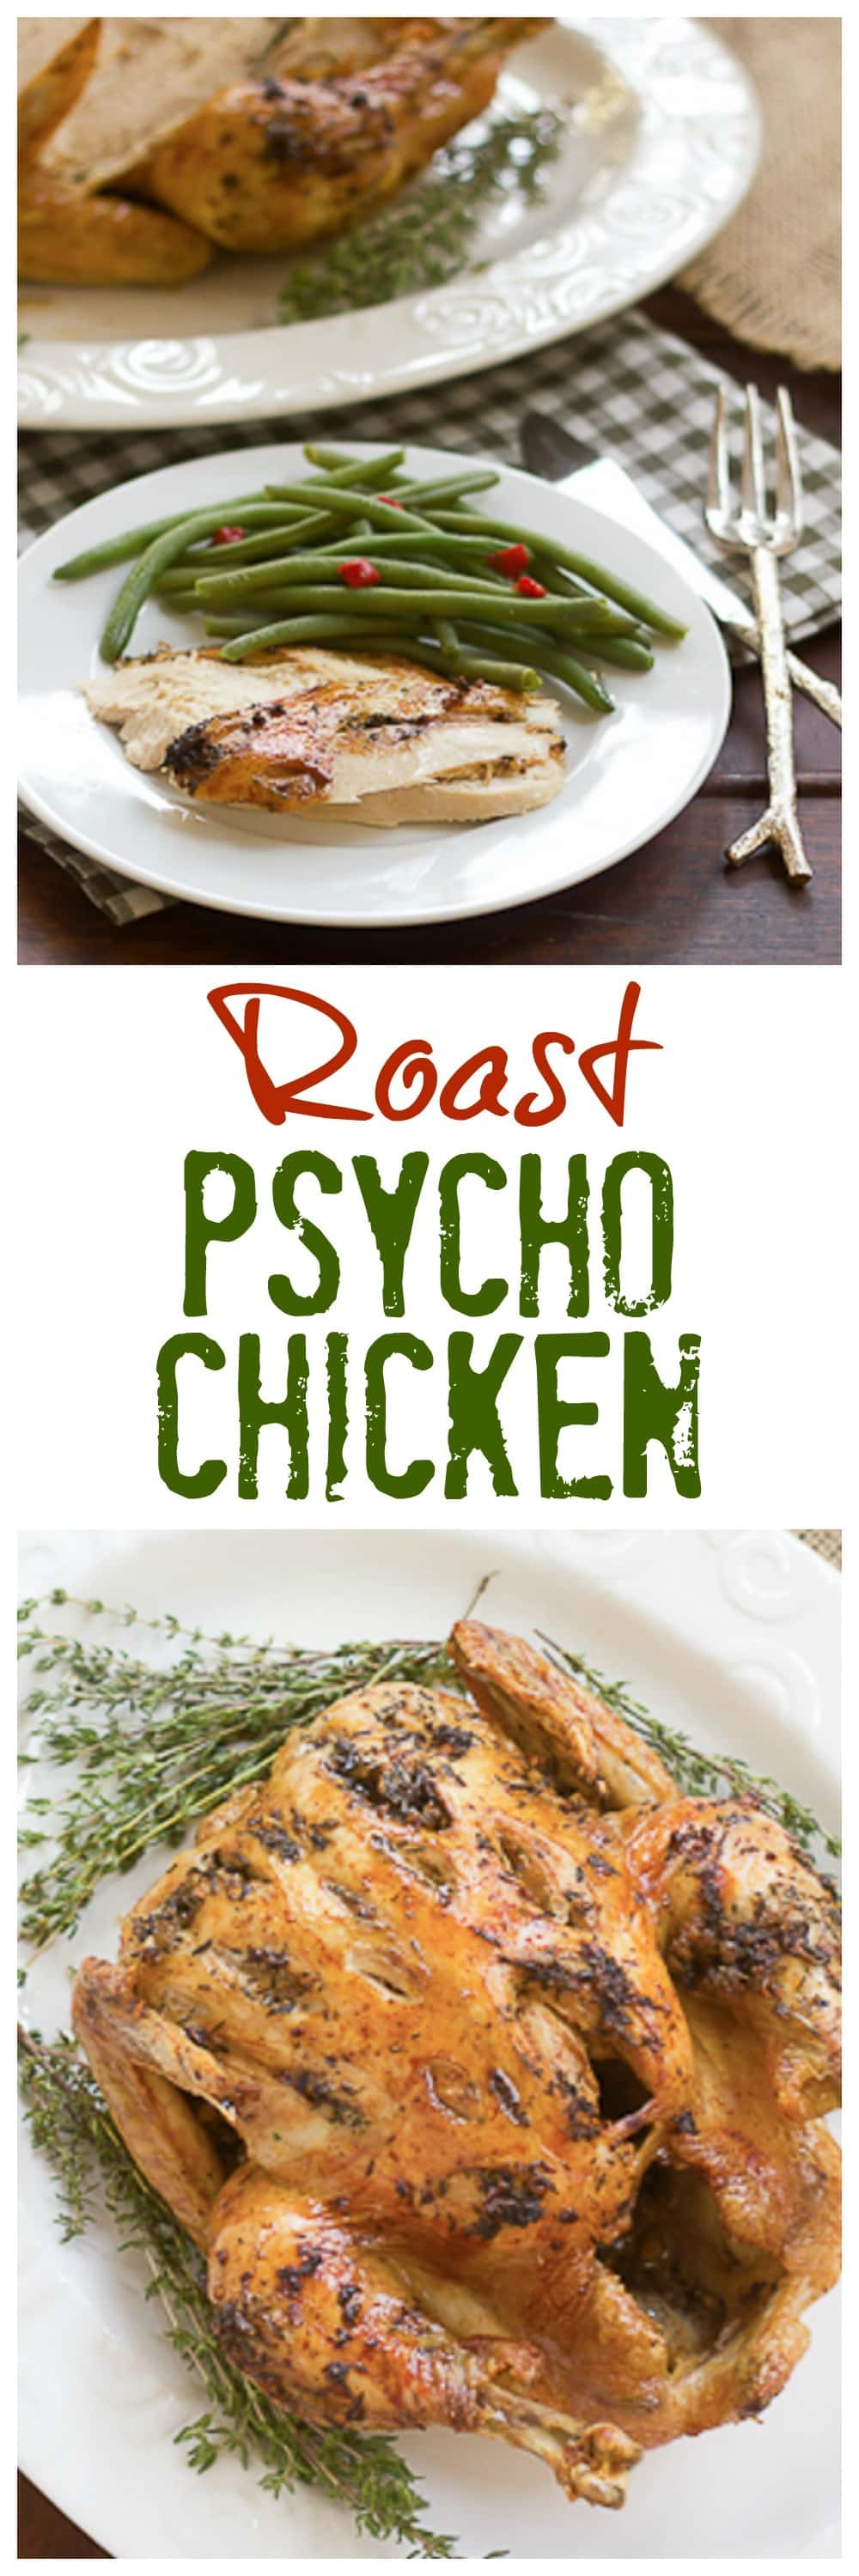 Roast Psycho Chicken | A slashing technique and a few ingredients make for a succulent entree!